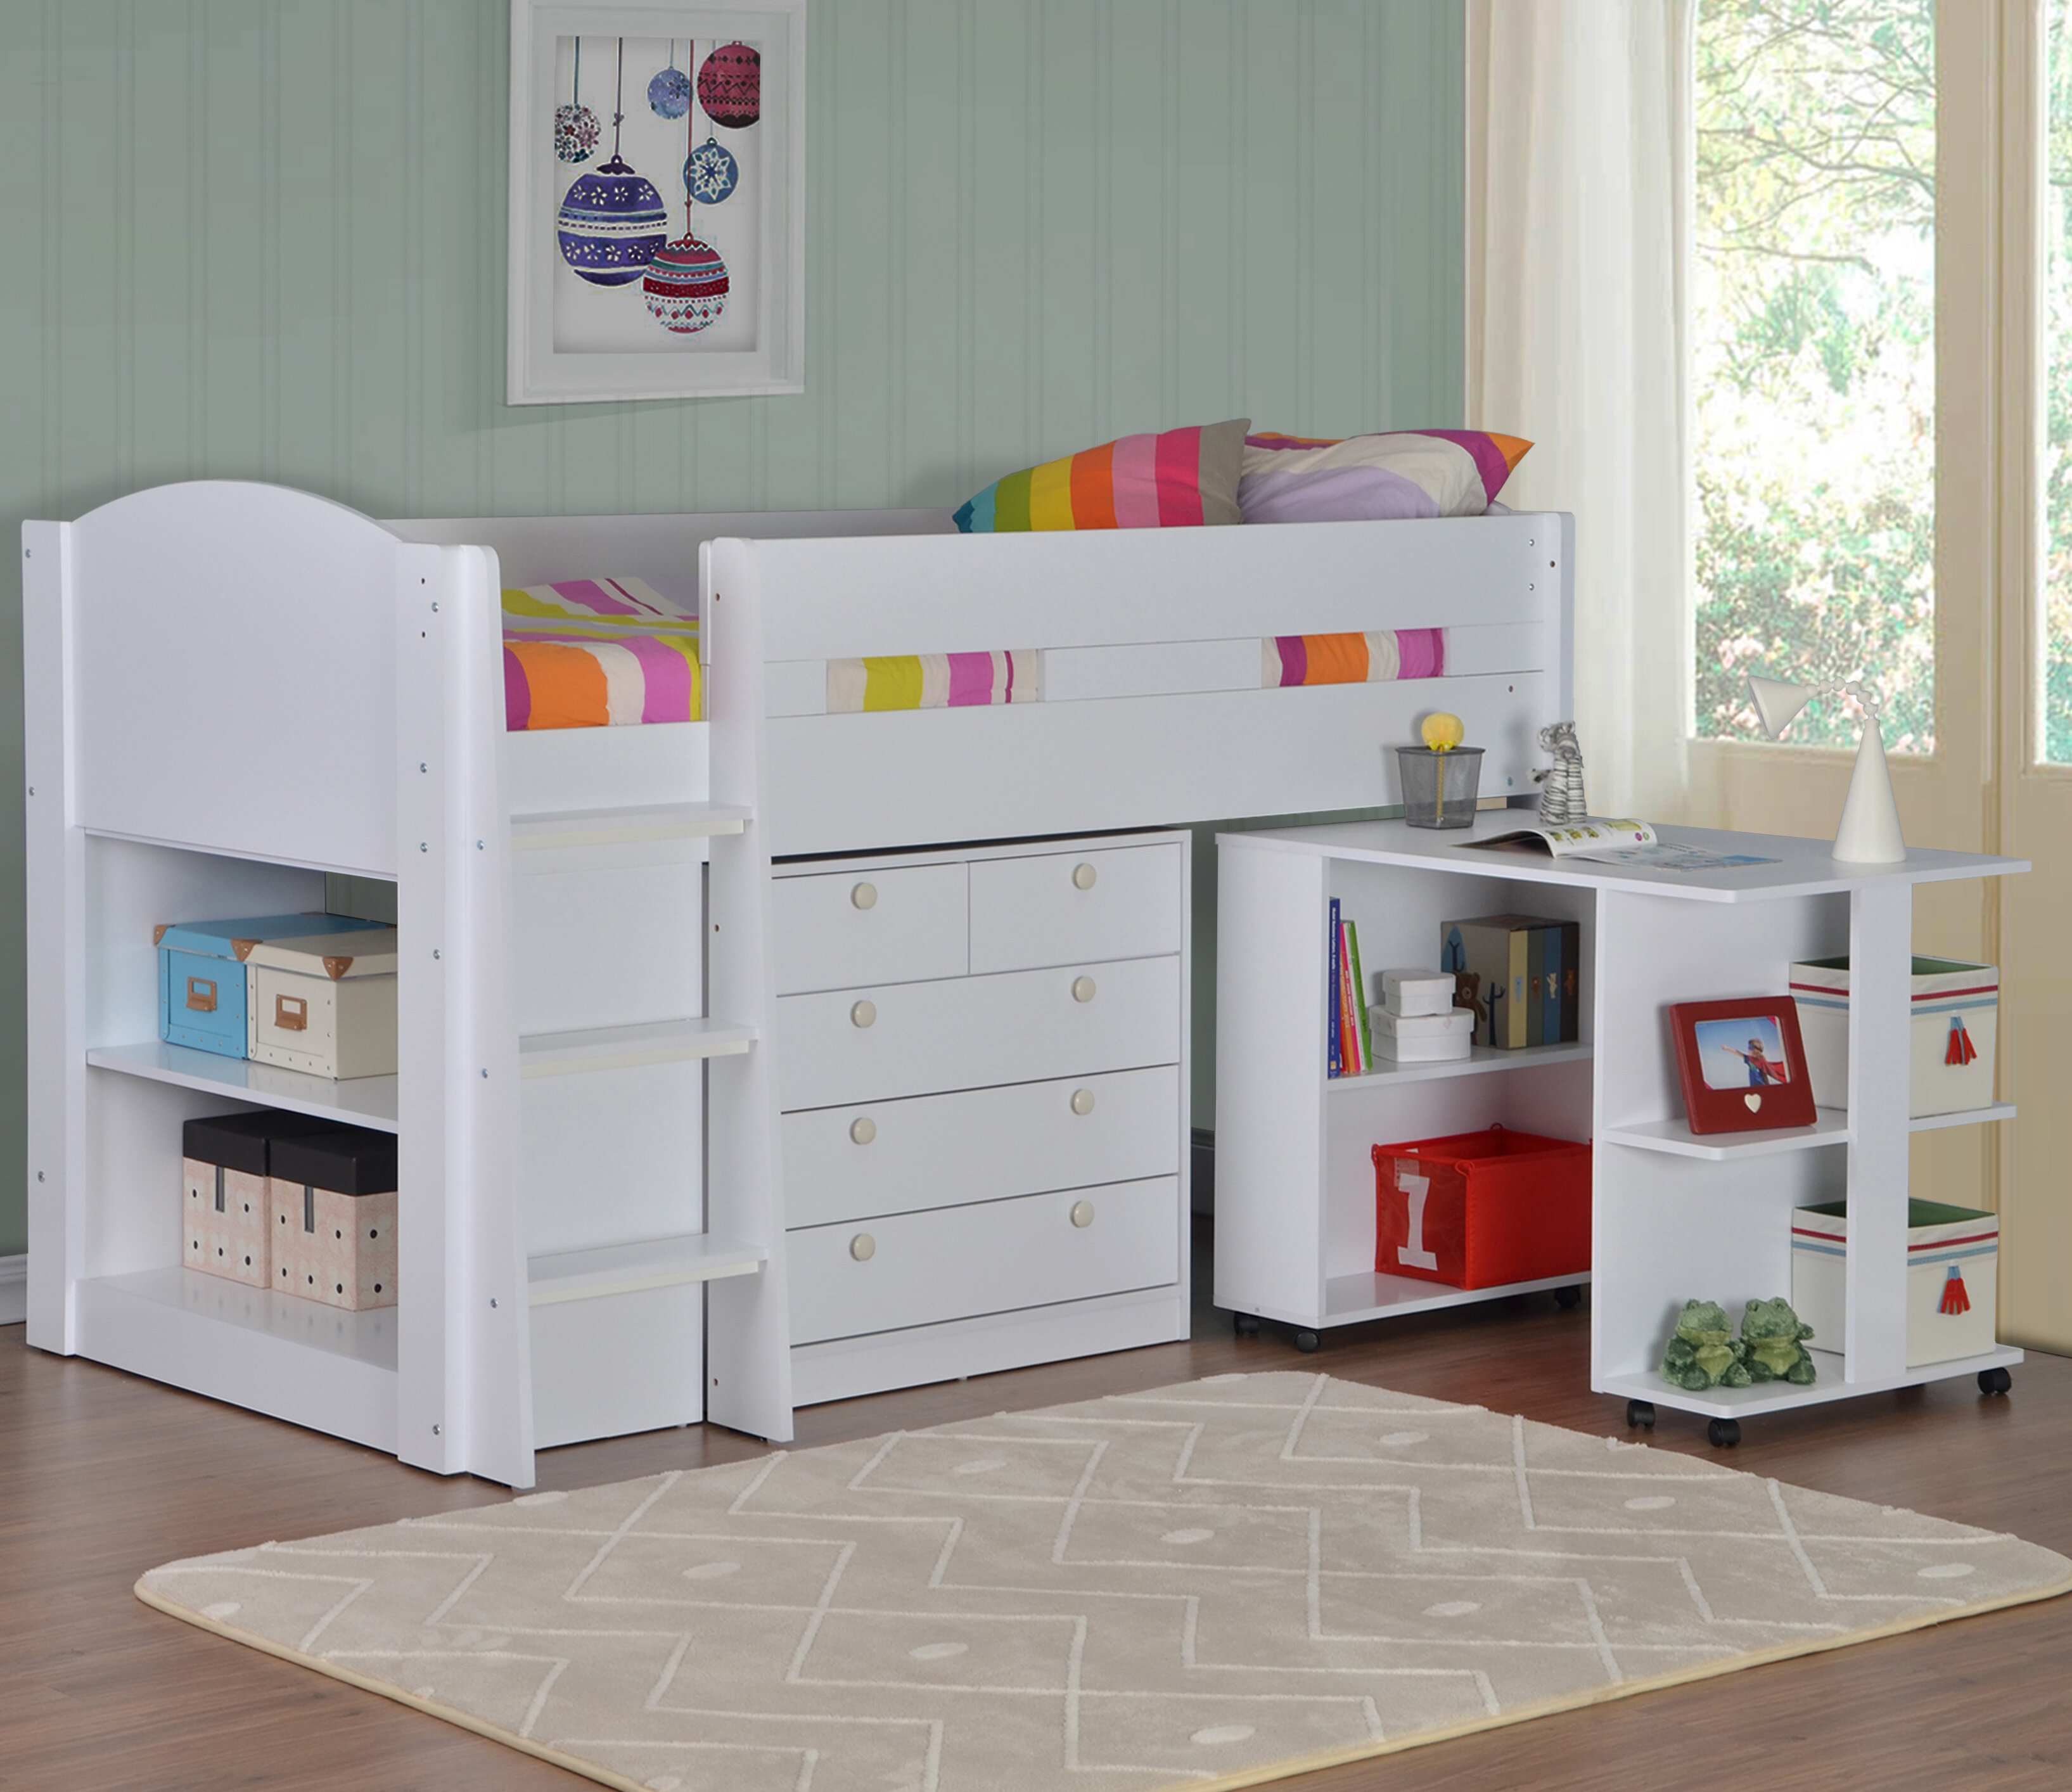 cabins bed bedsitter furniture city the larger view cabin l pine value com bunk post beds warehousemold kids